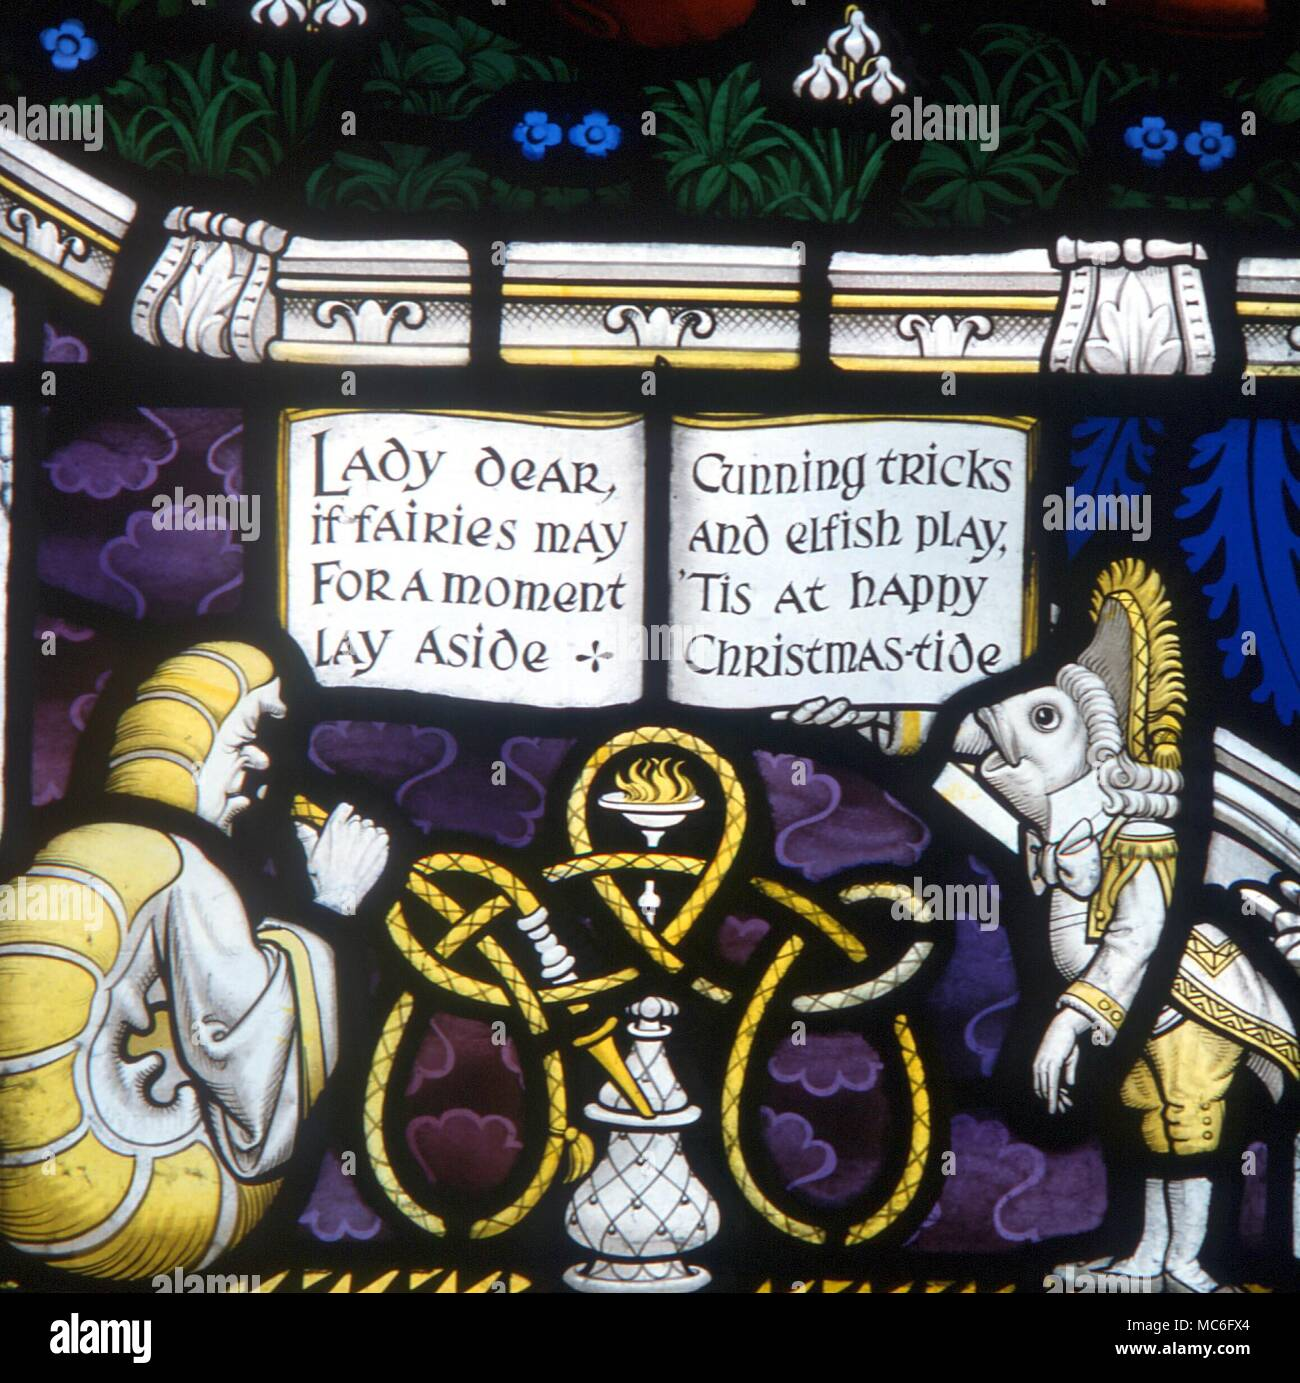 Dormouse, Hare and Mad Hatter - detail of the Lewis Carroll memorial window at Daresbury - Stock Image